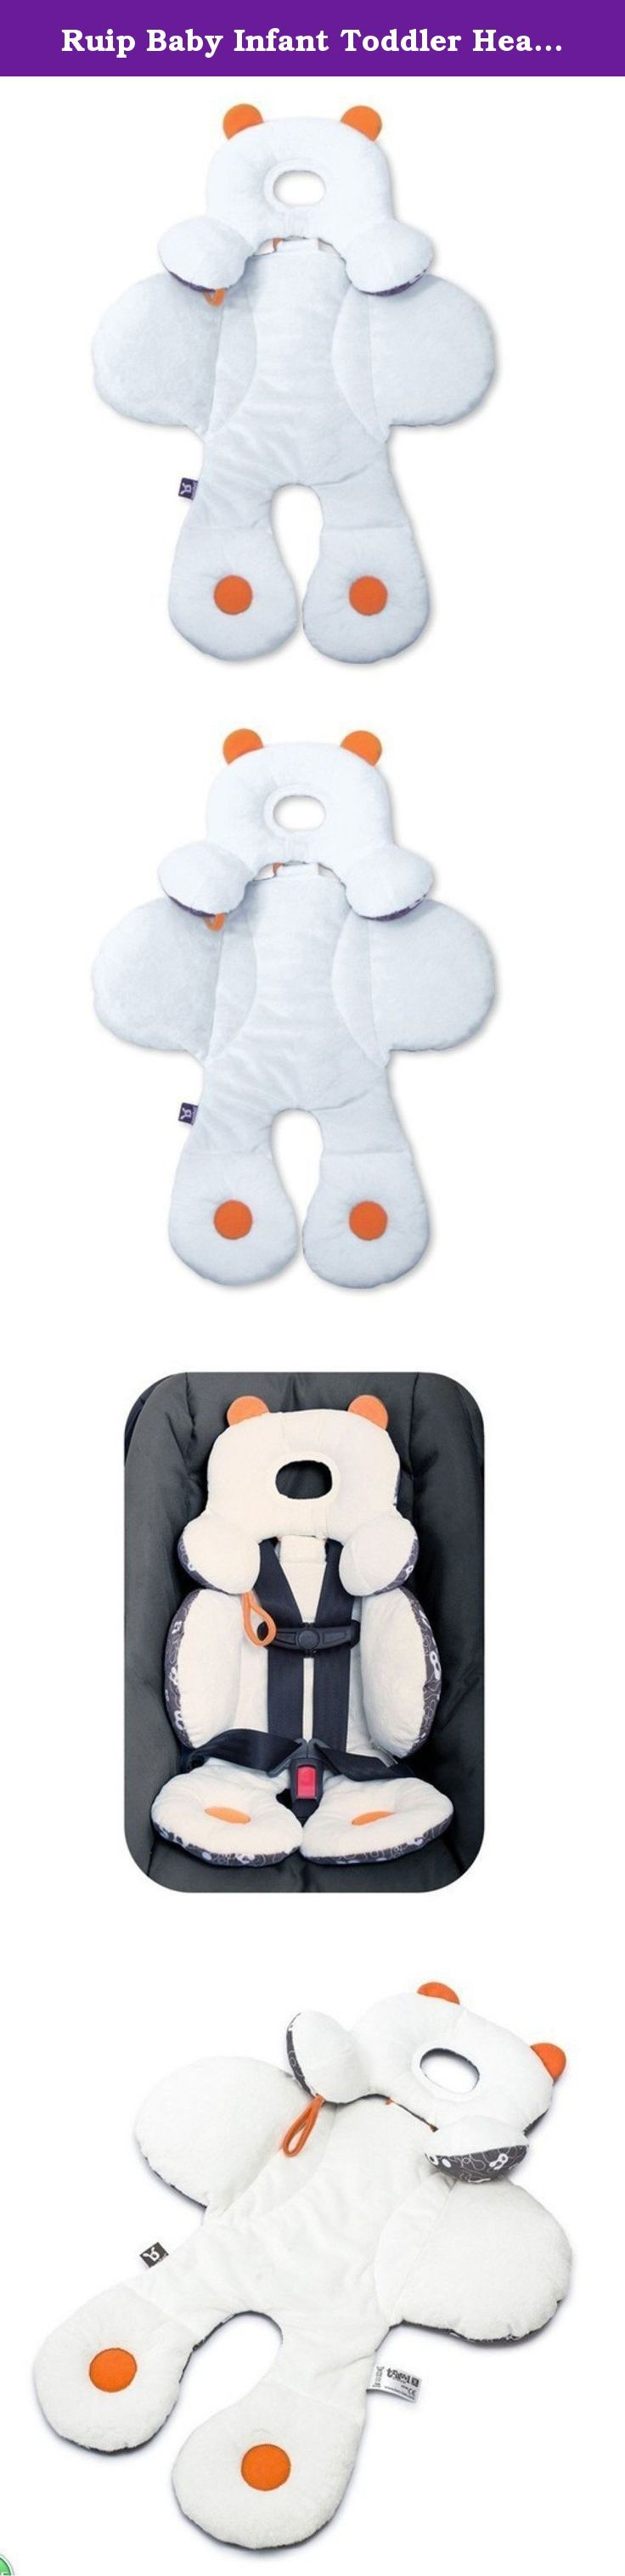 Ruip Baby Infant Toddler Head Body Support Car Seat Cover Joggers Strollers Support Body Cushions. Type:Baby Stroller Pattern Type:Character Frame Material:Plastic Age Range:10-12 months Material:Cotton,Polyester Capacity:Single Type:Seat Cushion.